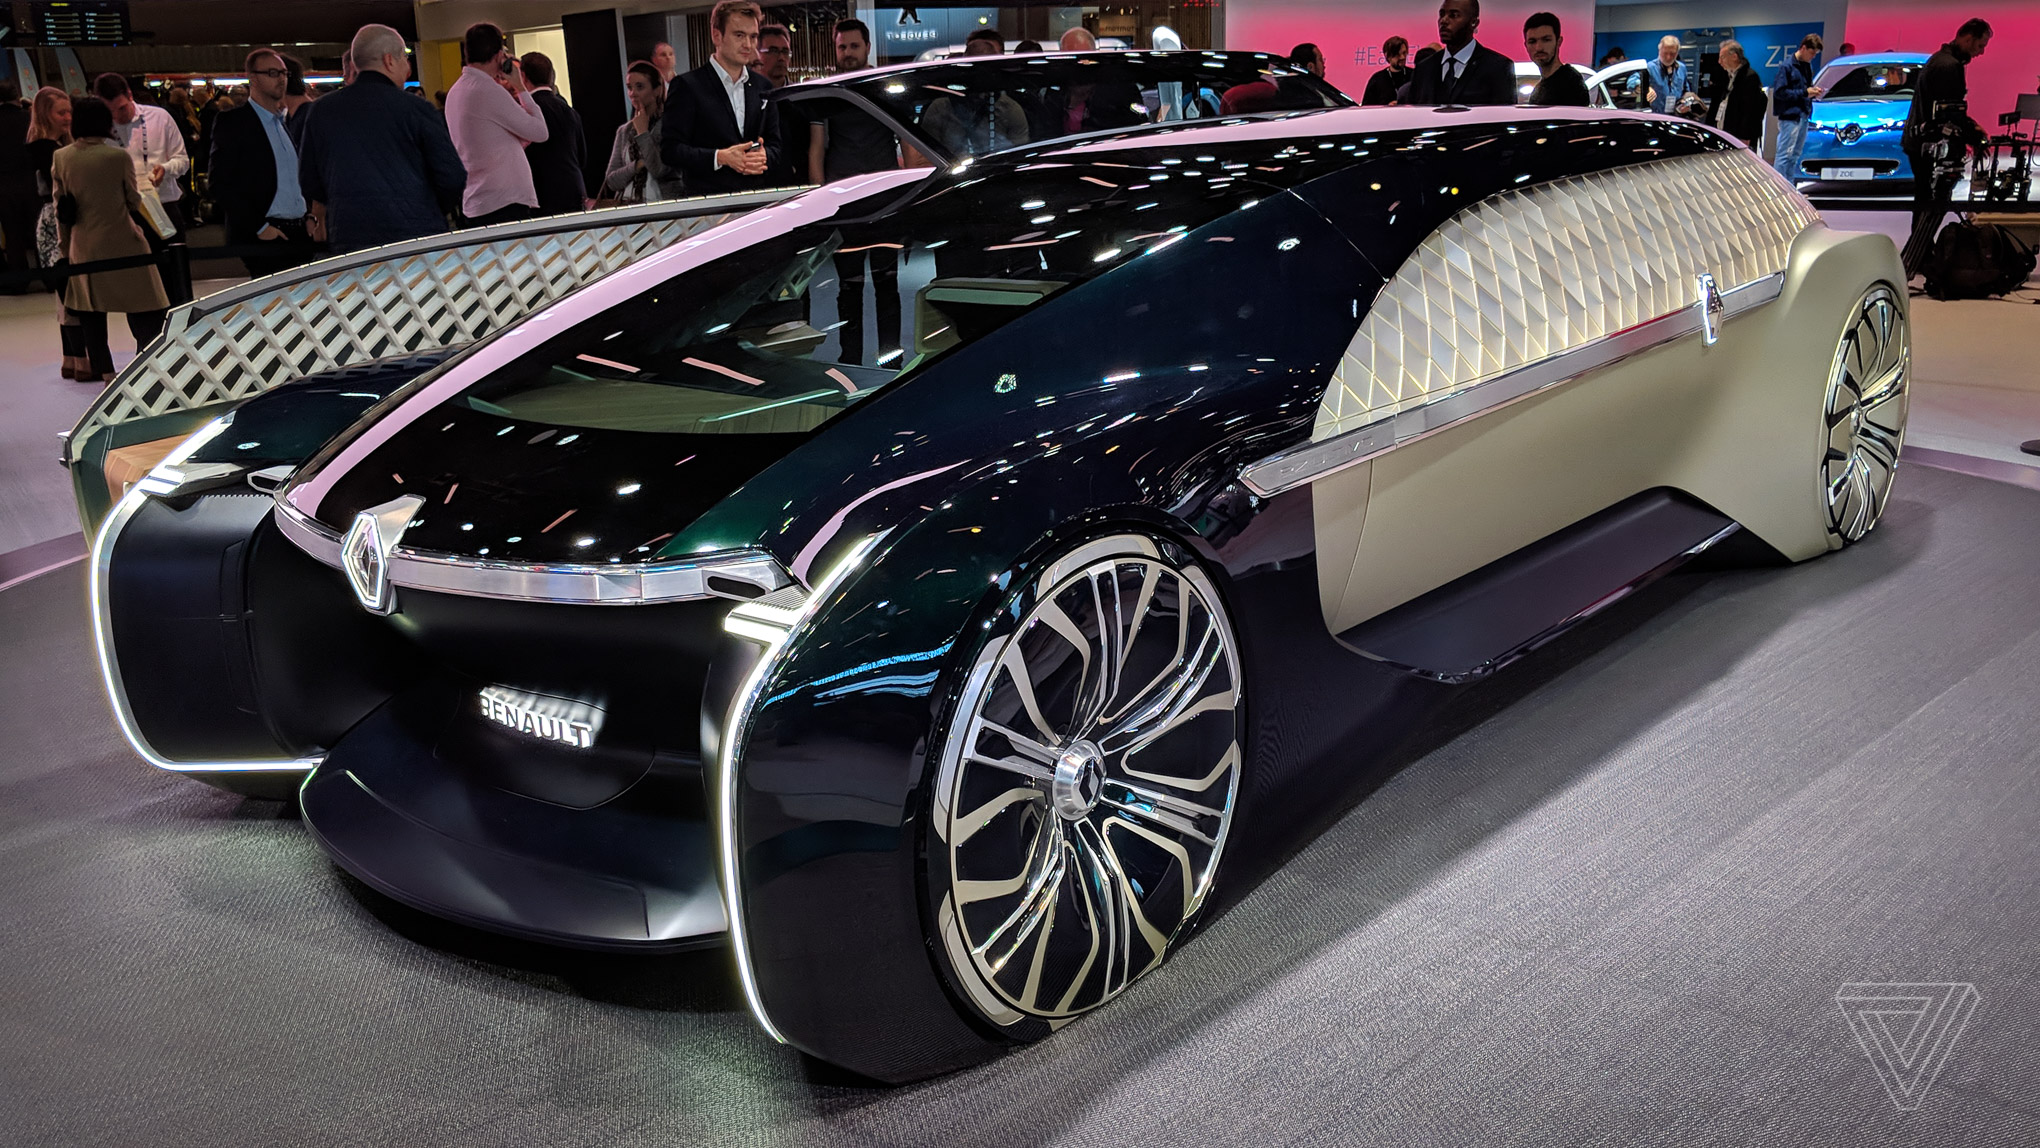 Renault's EZ-Ultimo Self-driving Concept Is A Giant Slice